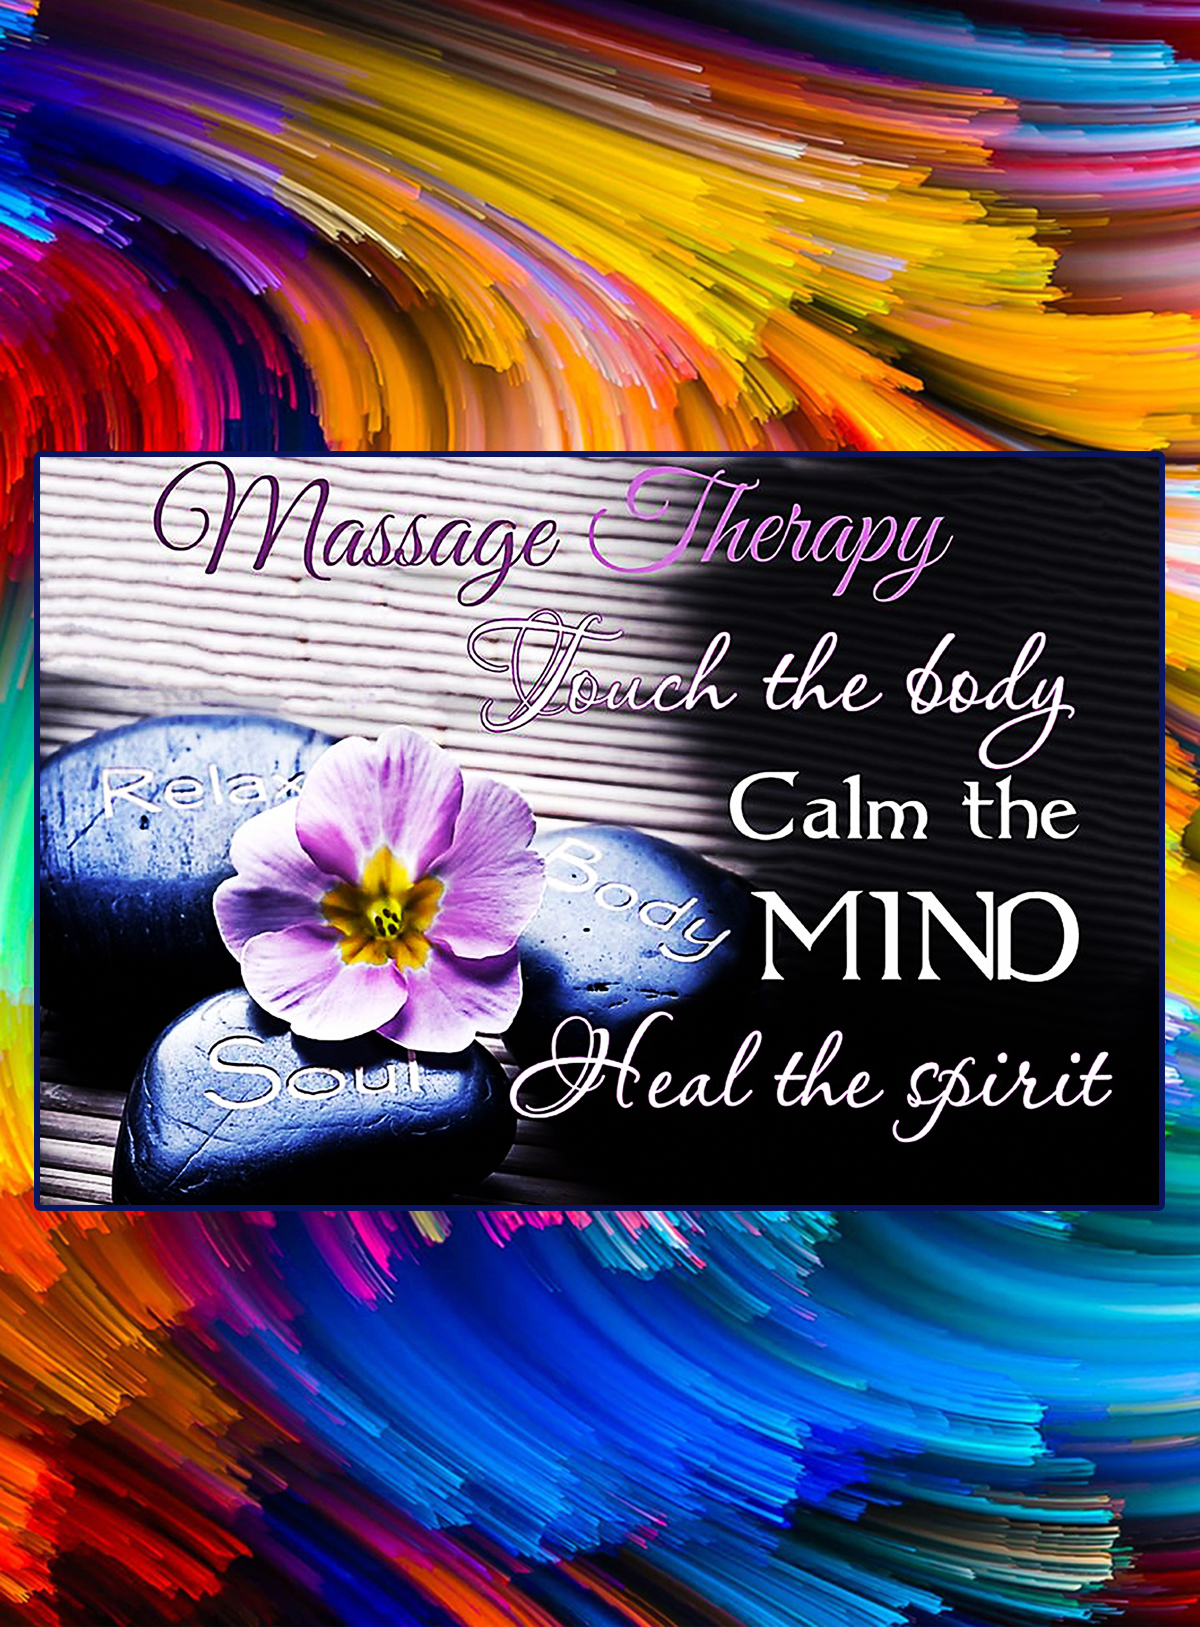 Massage therapy touch the body calm the mind heal the spirit poster